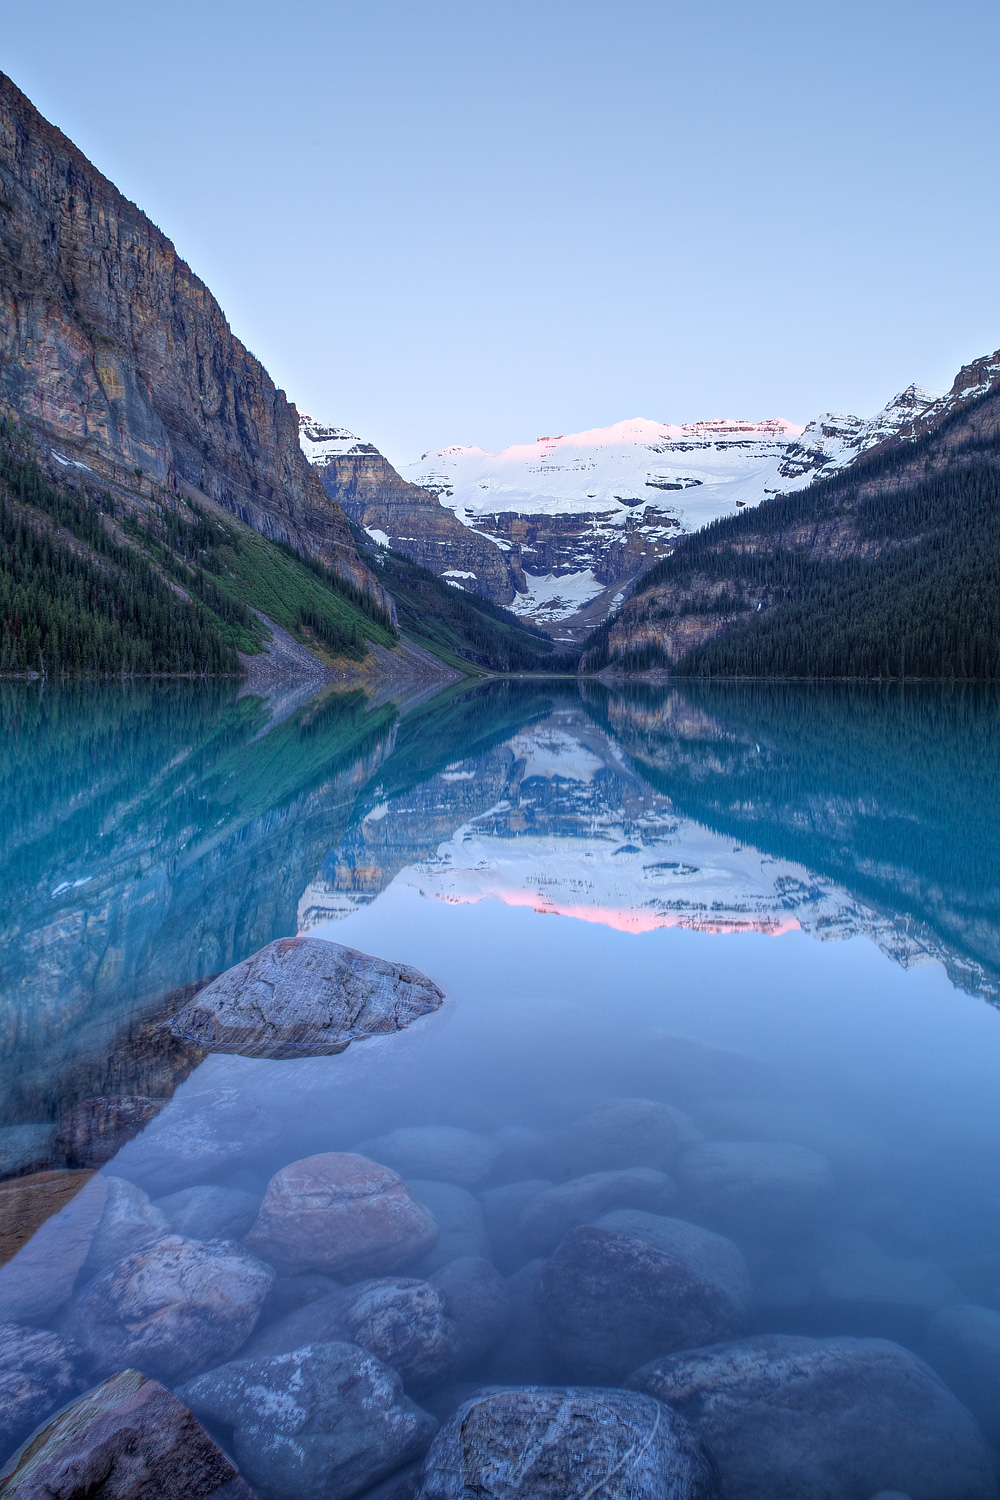 LakeLouise_b_MG_2390.jpg